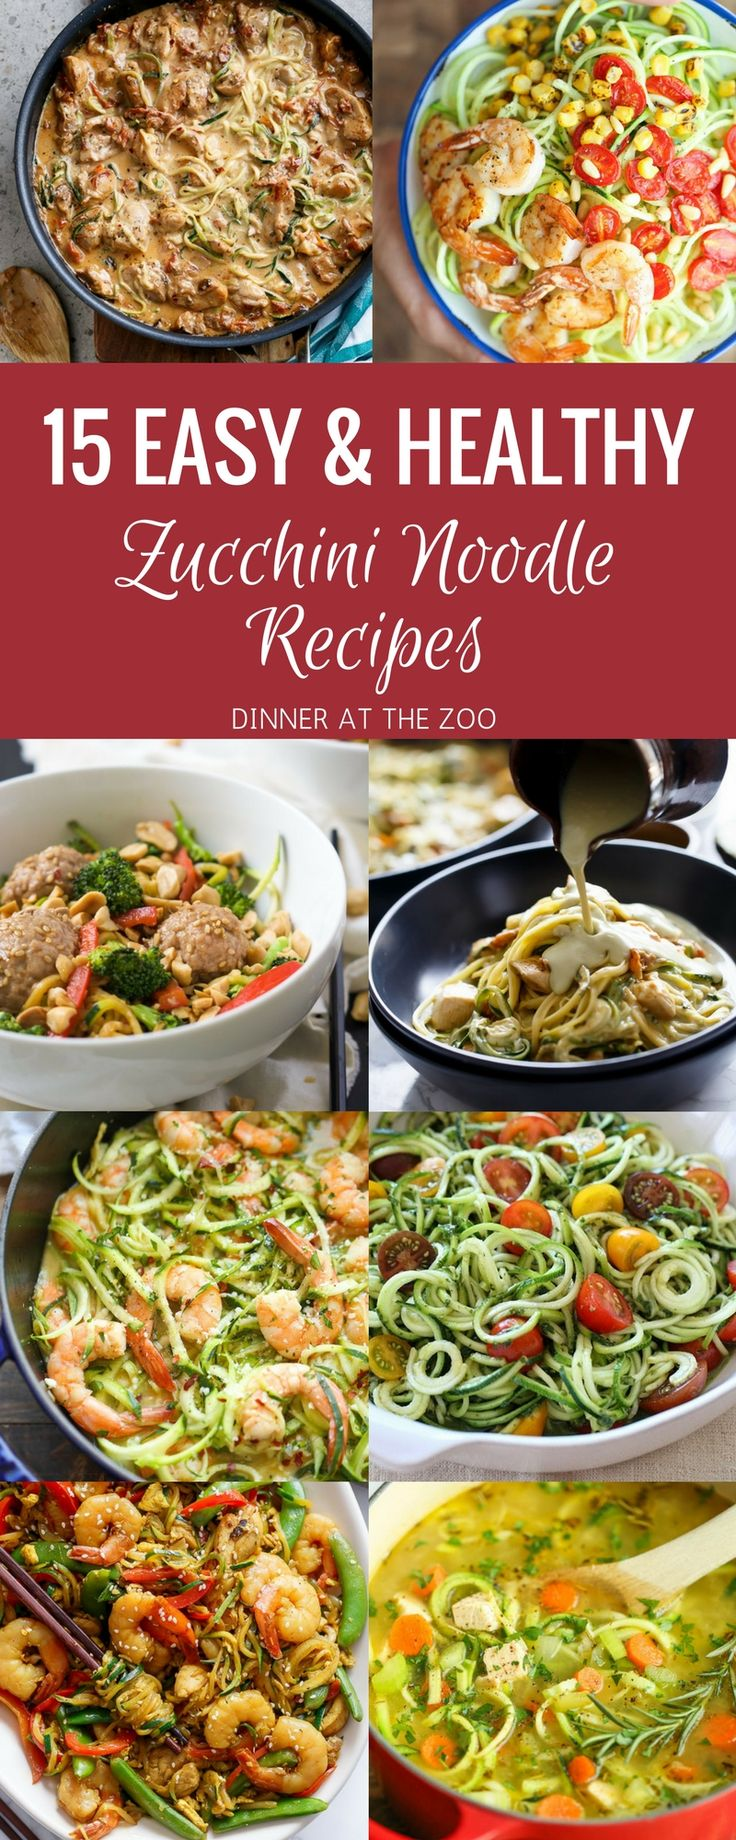 15 Easy & Healthy Zoodle (Zucchini Noodle) Recipes